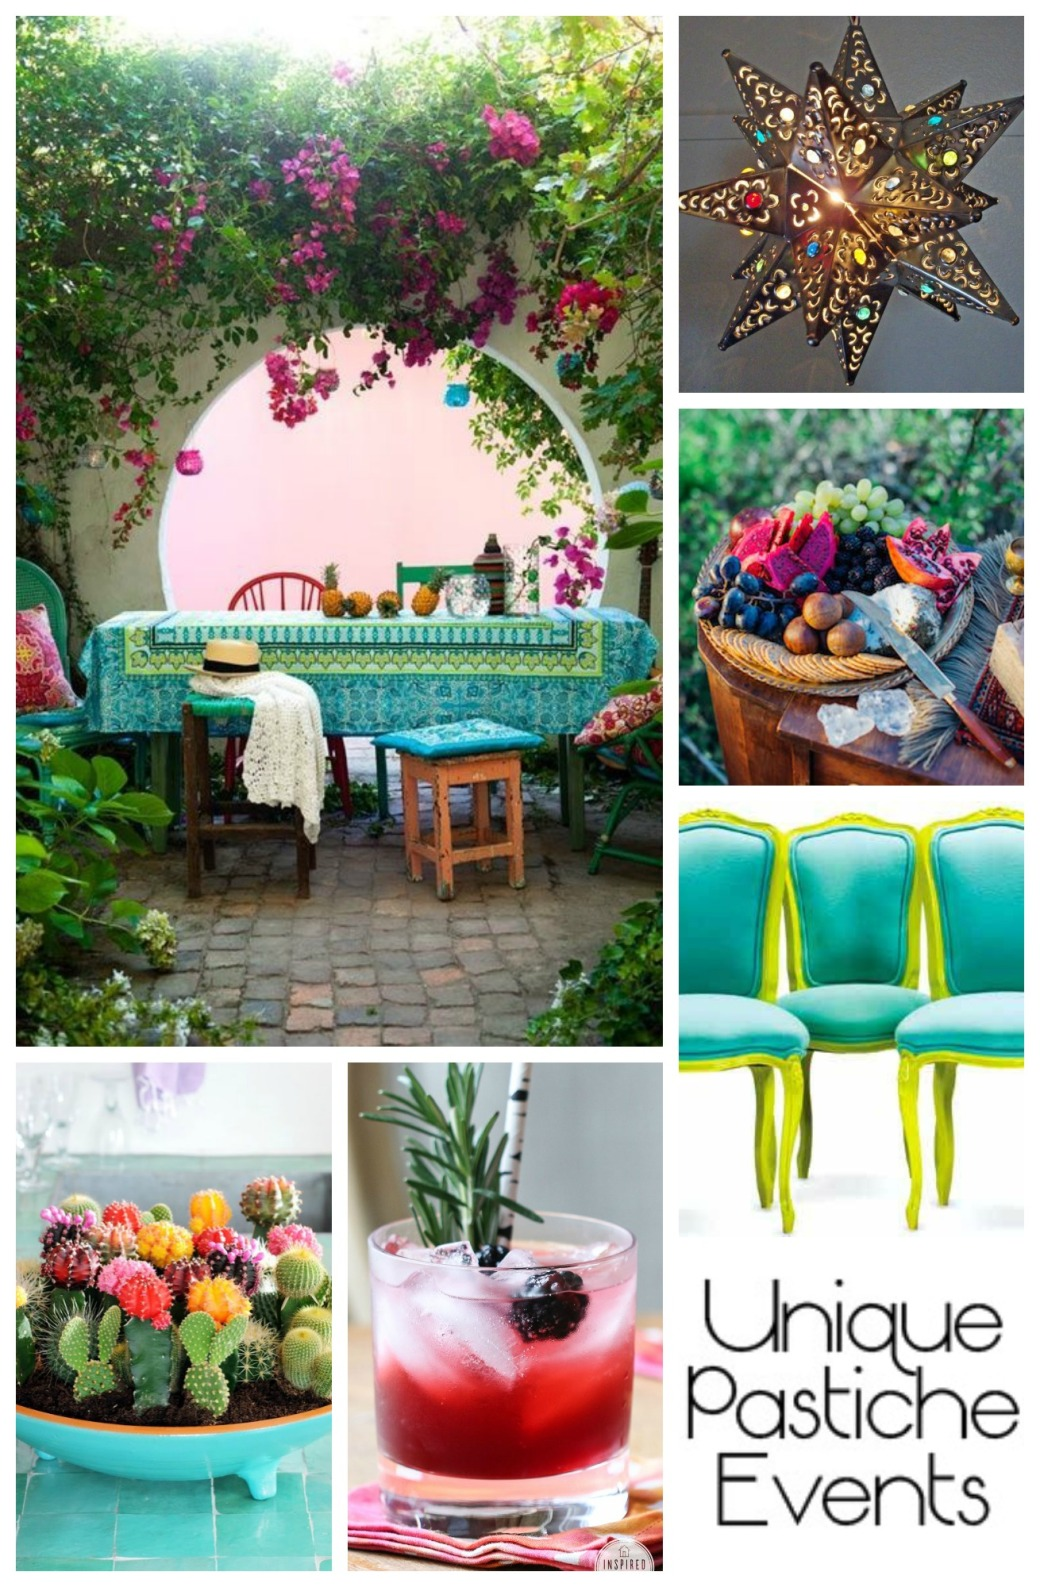 Themed Party Inspiration | Unique Pastiche Events on garden irrigation ideas, sunset magazine landscaping ideas, sunset party ideas, diy container gardening ideas, southern california landscape ideas, sunset decorating ideas, sunset magazine garden, sunset magazine container gardening, garden and outdoor living ideas, sunset bbq ideas, sunset patios, sunset room ideas, sunset furniture, sunset bathroom ideas, sunset garden book, sunset picnic ideas, sunset summer, sunset design ideas, sunset storage ideas, sunset painting ideas,